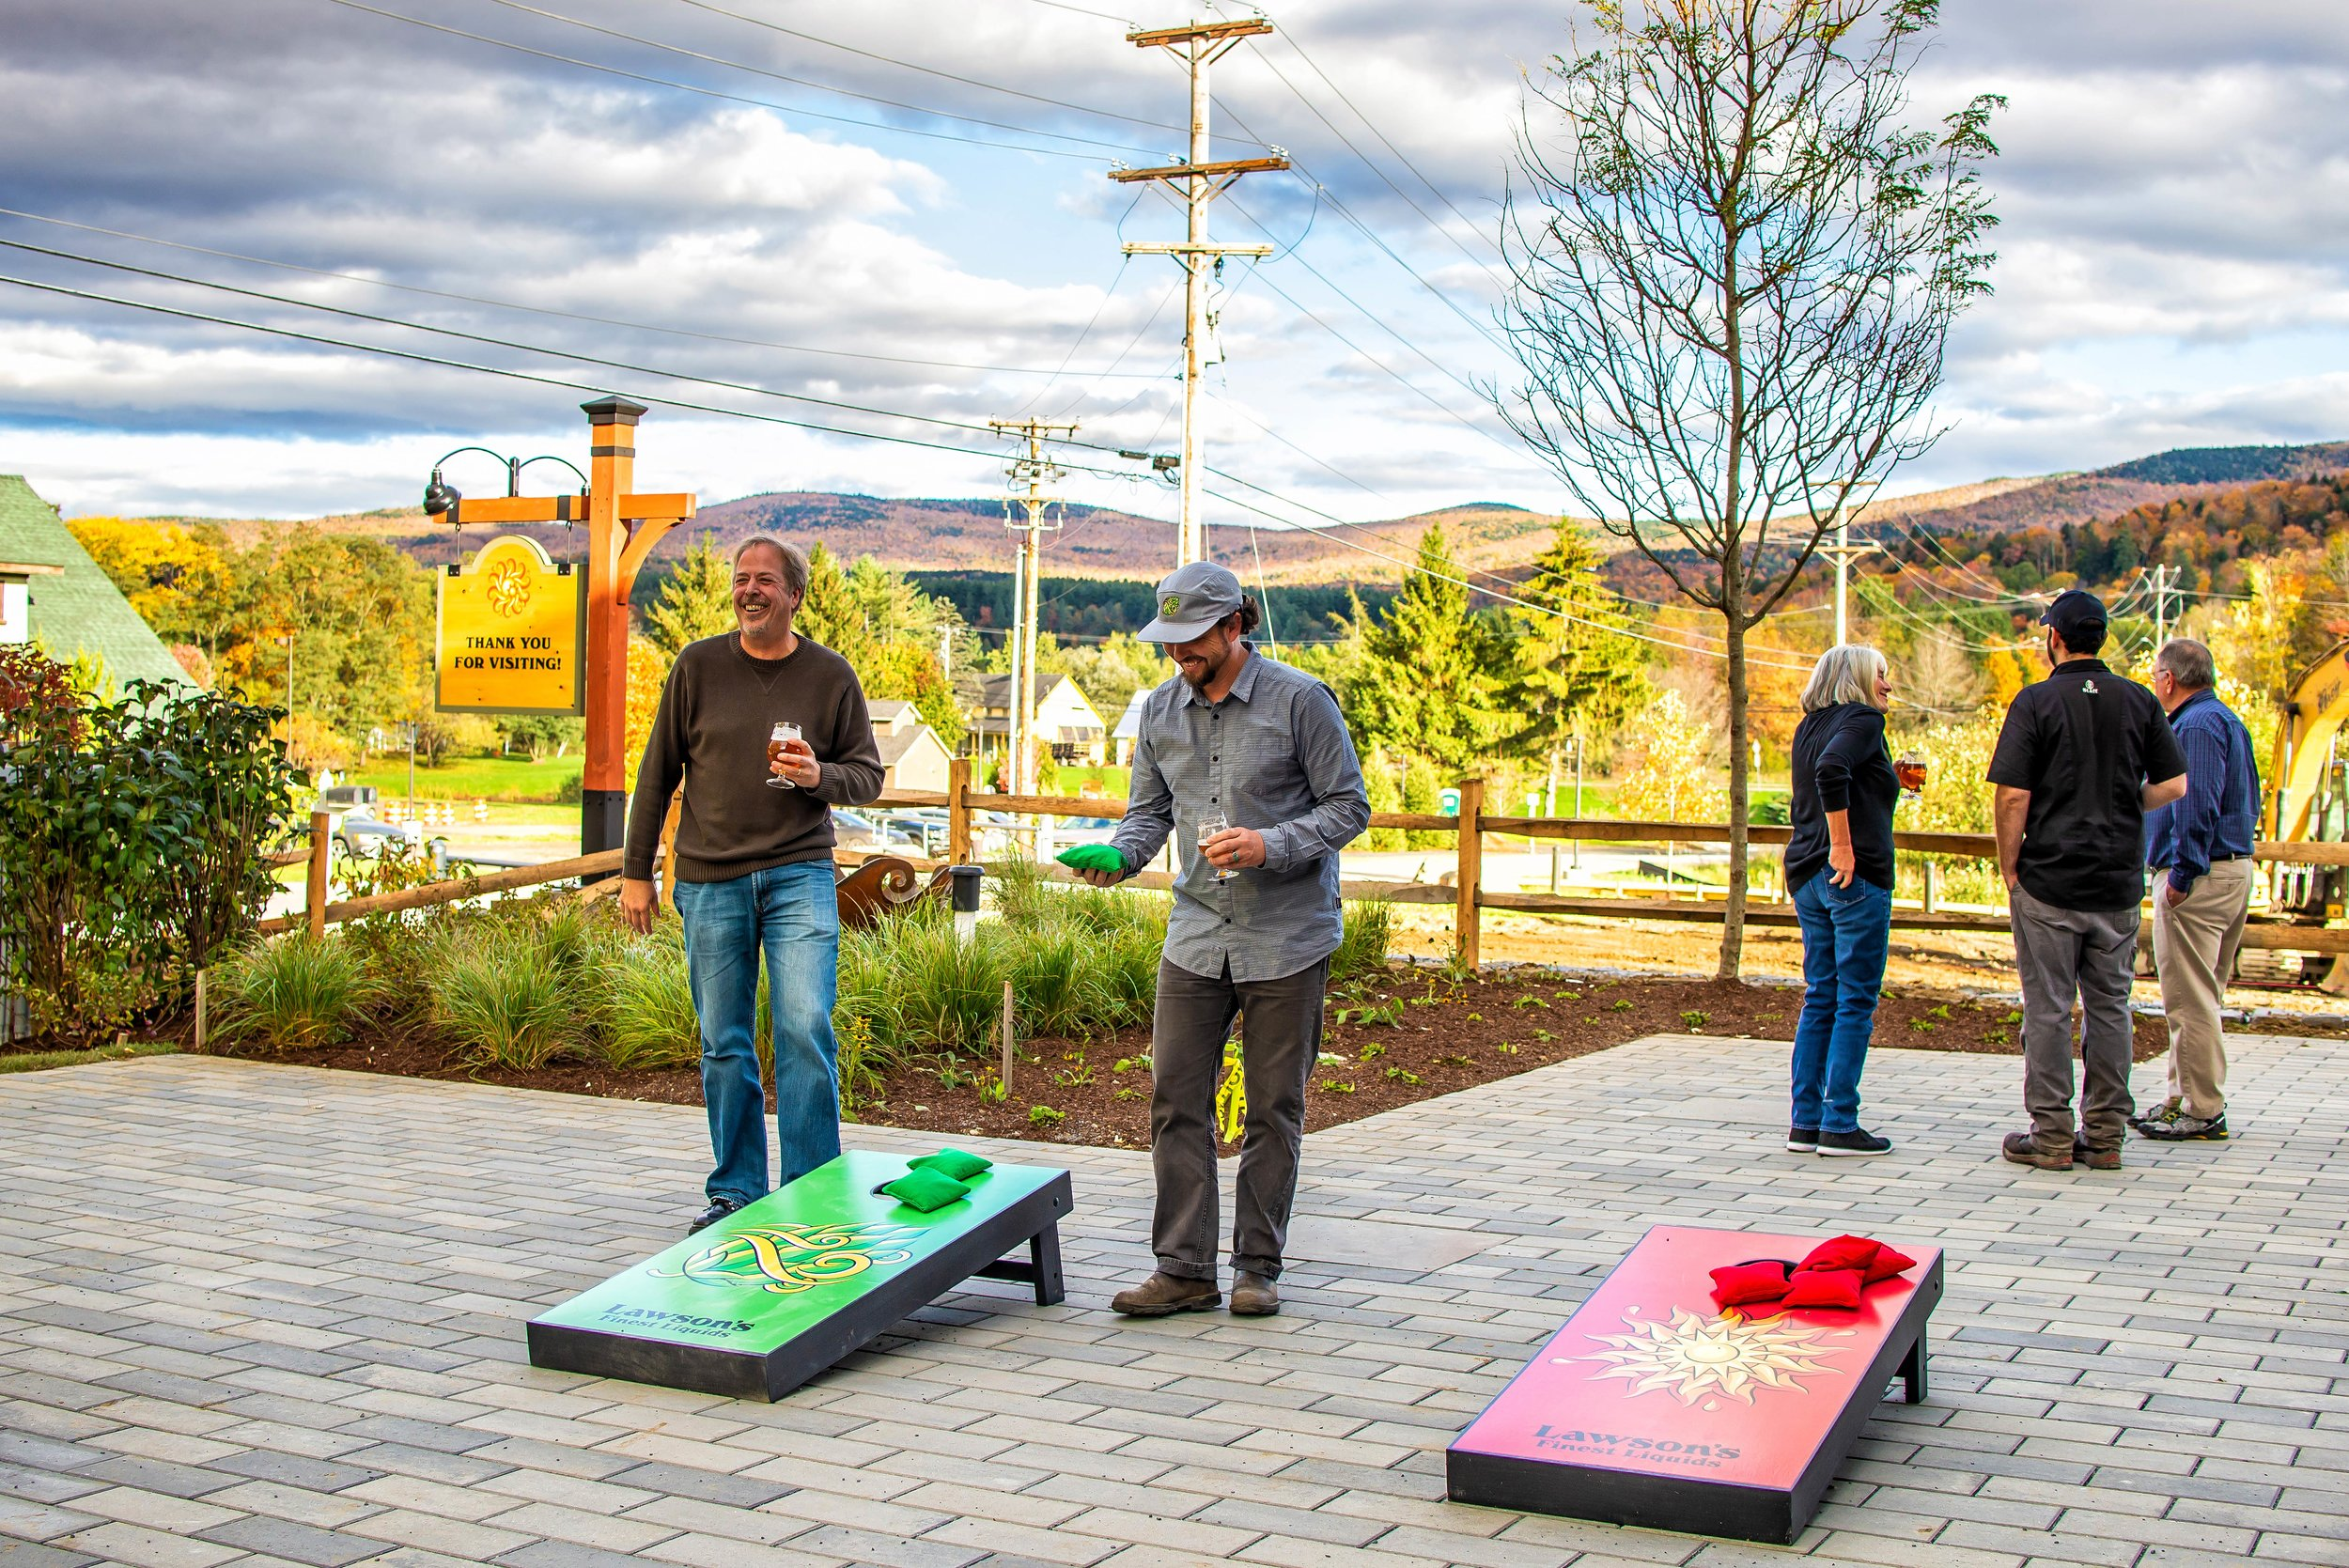 lawsons finest taproom waitsfield cornhole.jpg